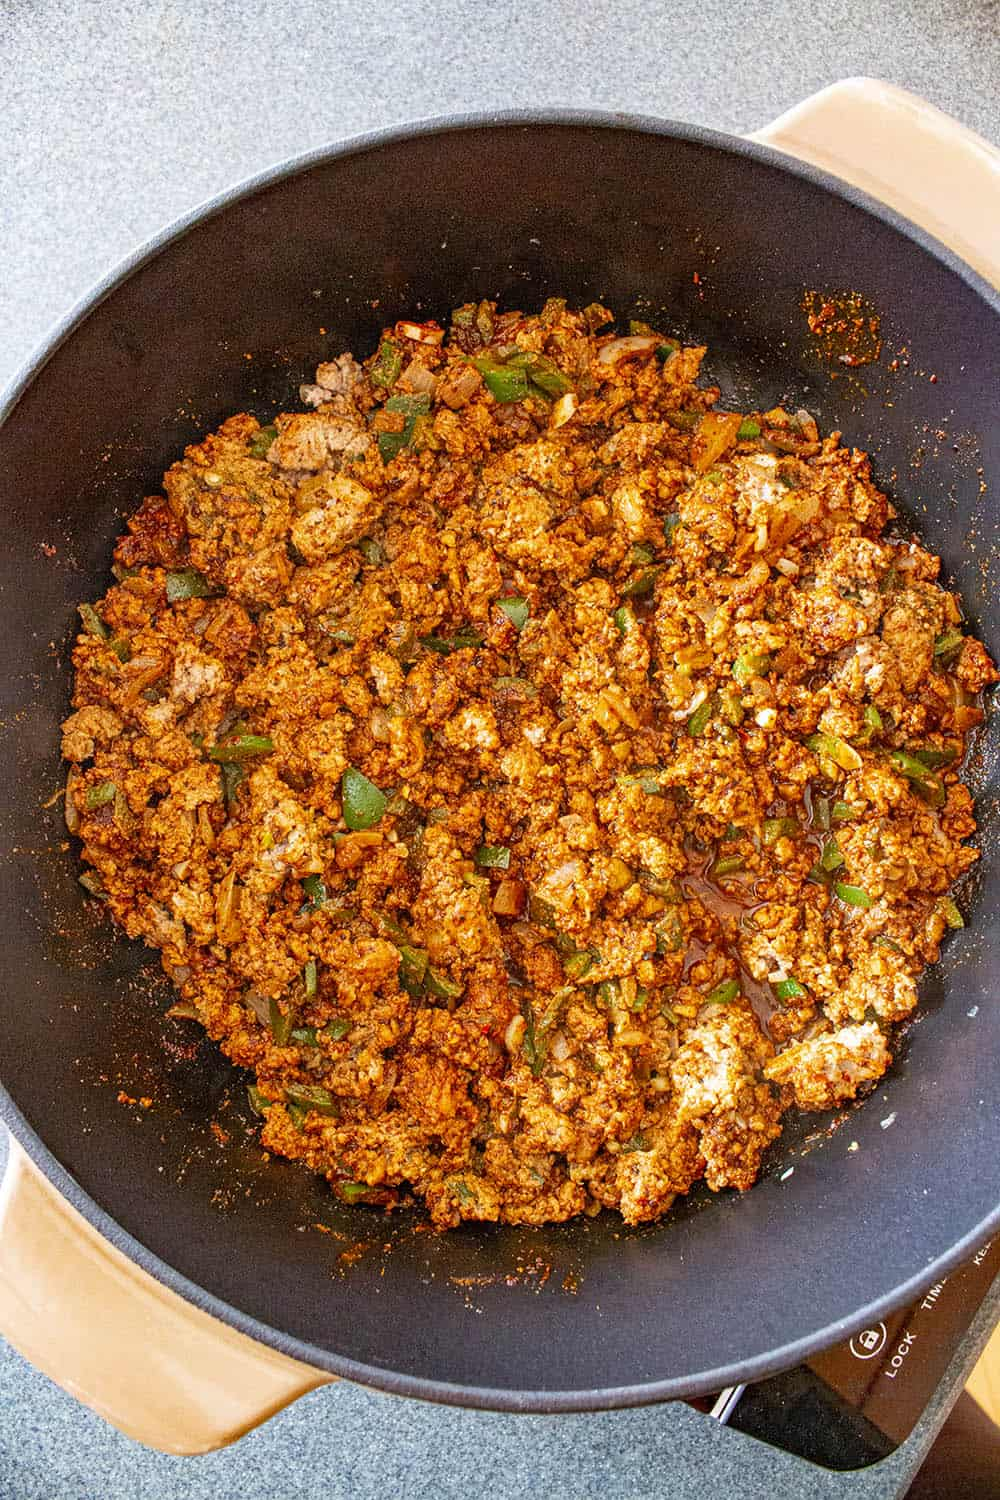 Seasoning added to the ground meat in the pan